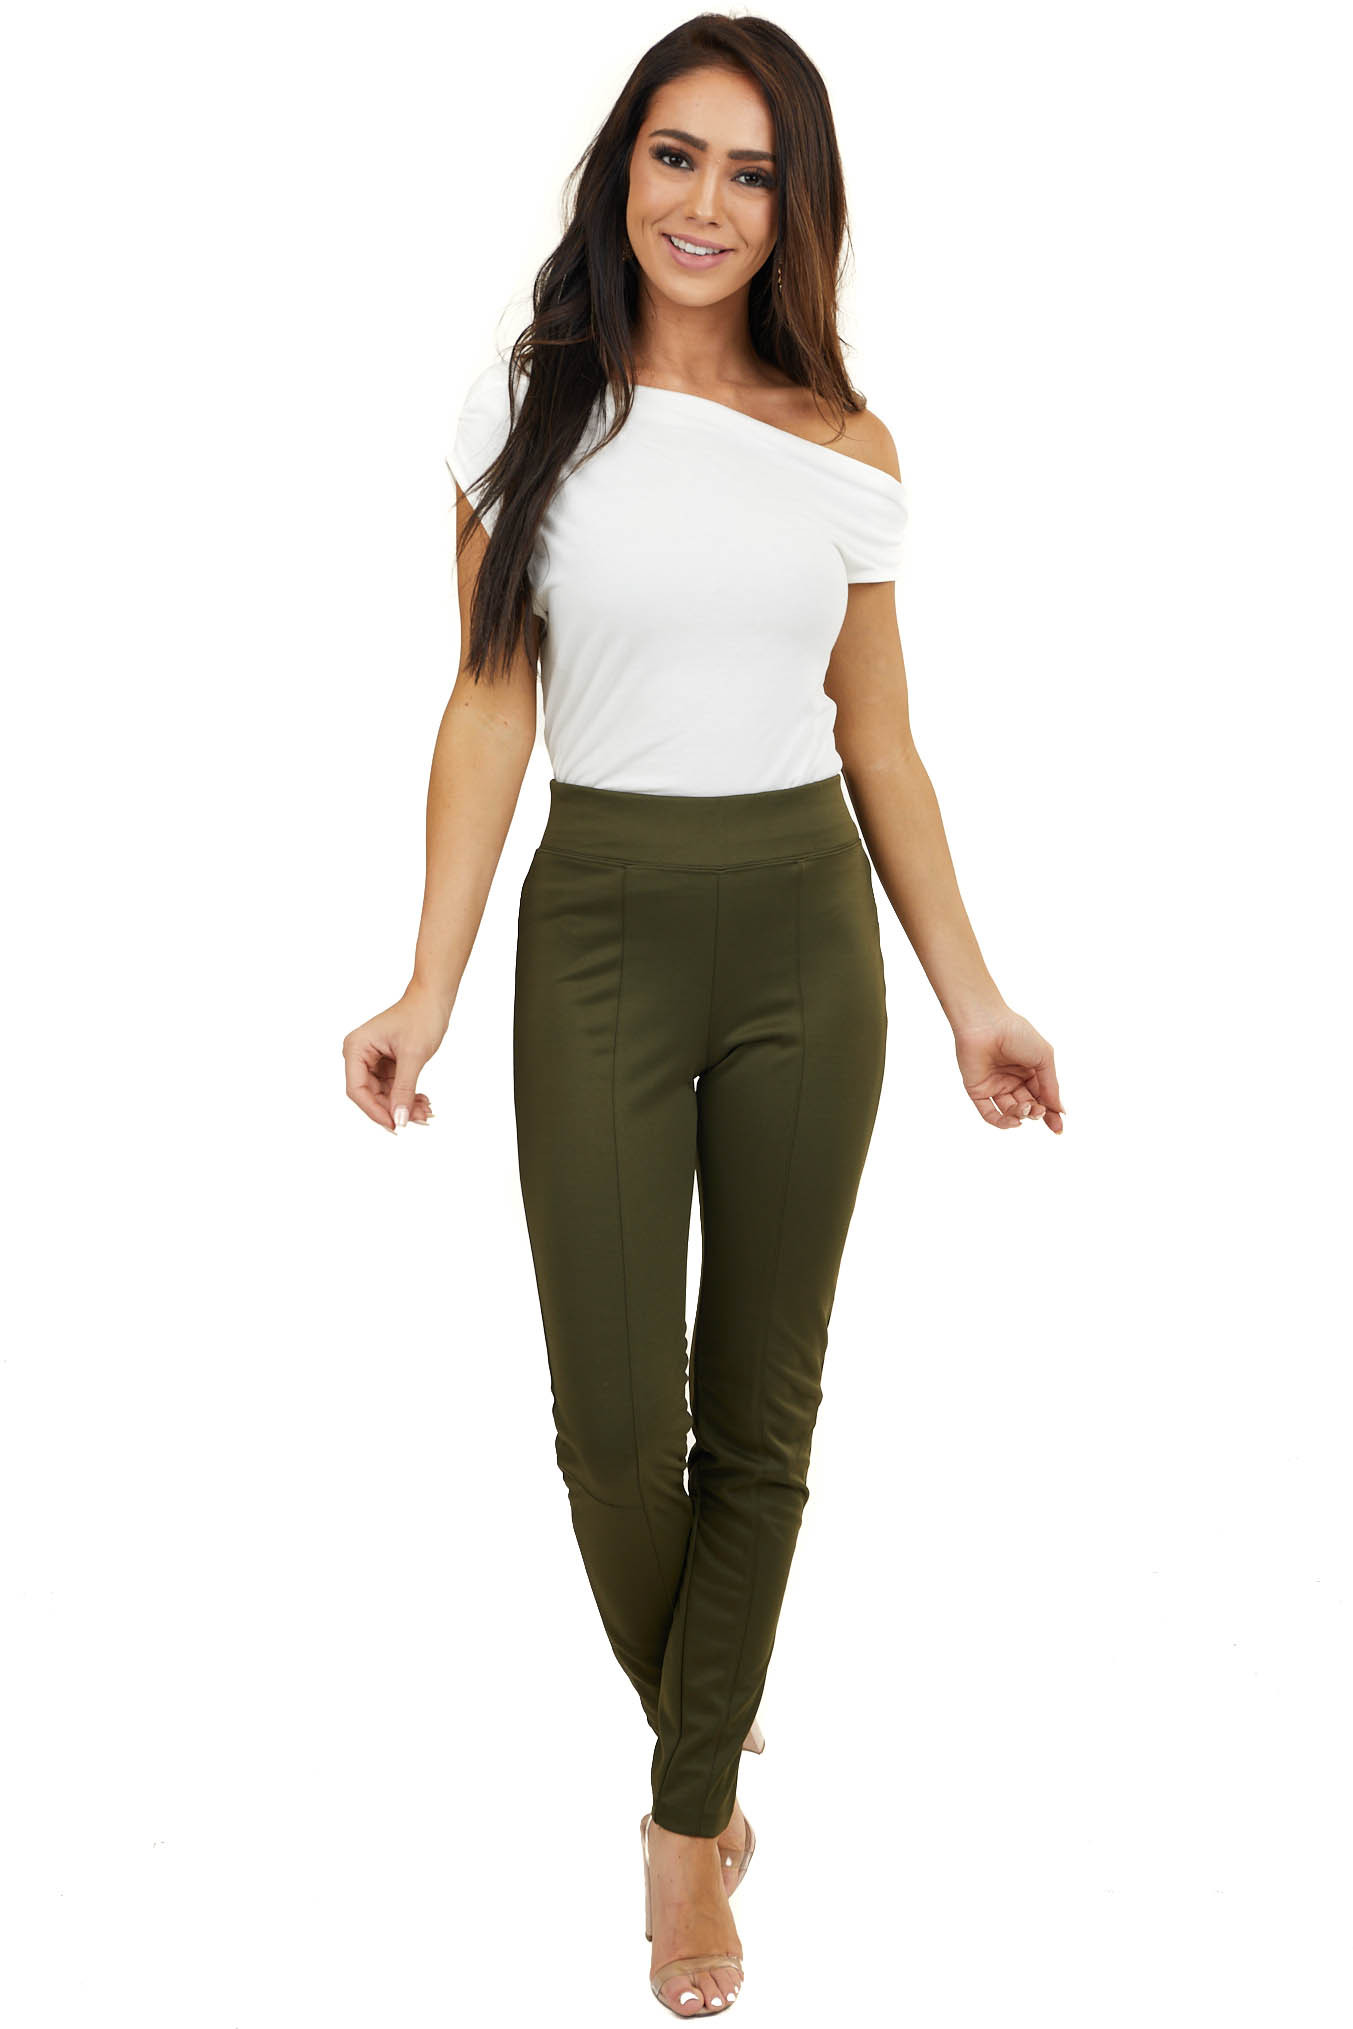 Army Green High Waisted Leggings with Elastic Waistband